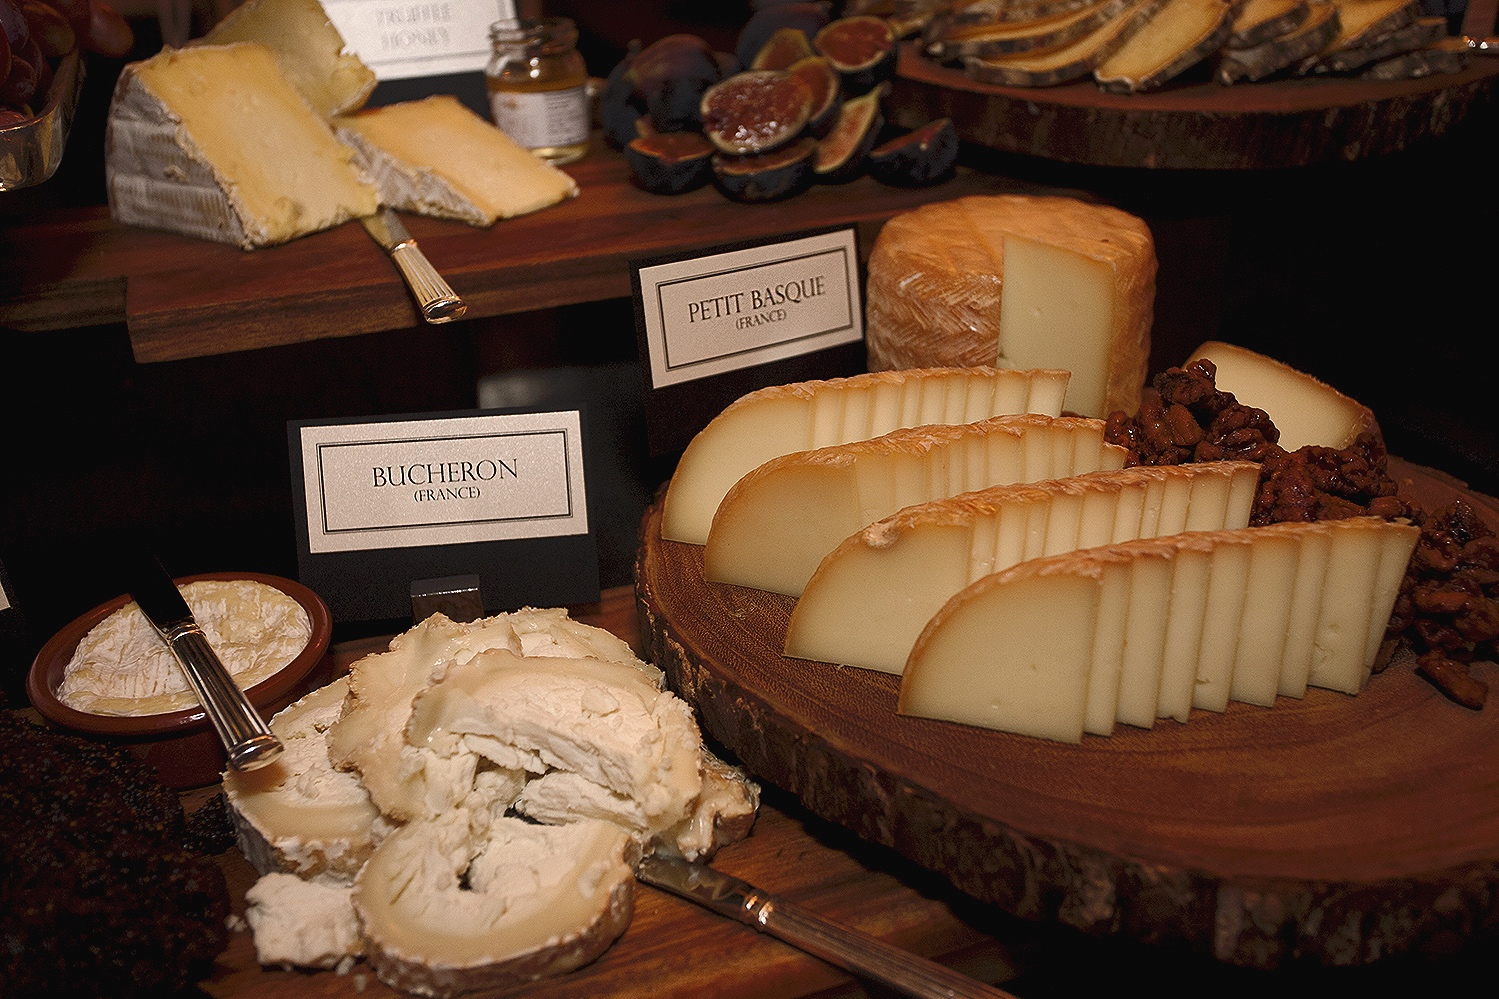 Cheese platter with Bucheron and Petite Basque